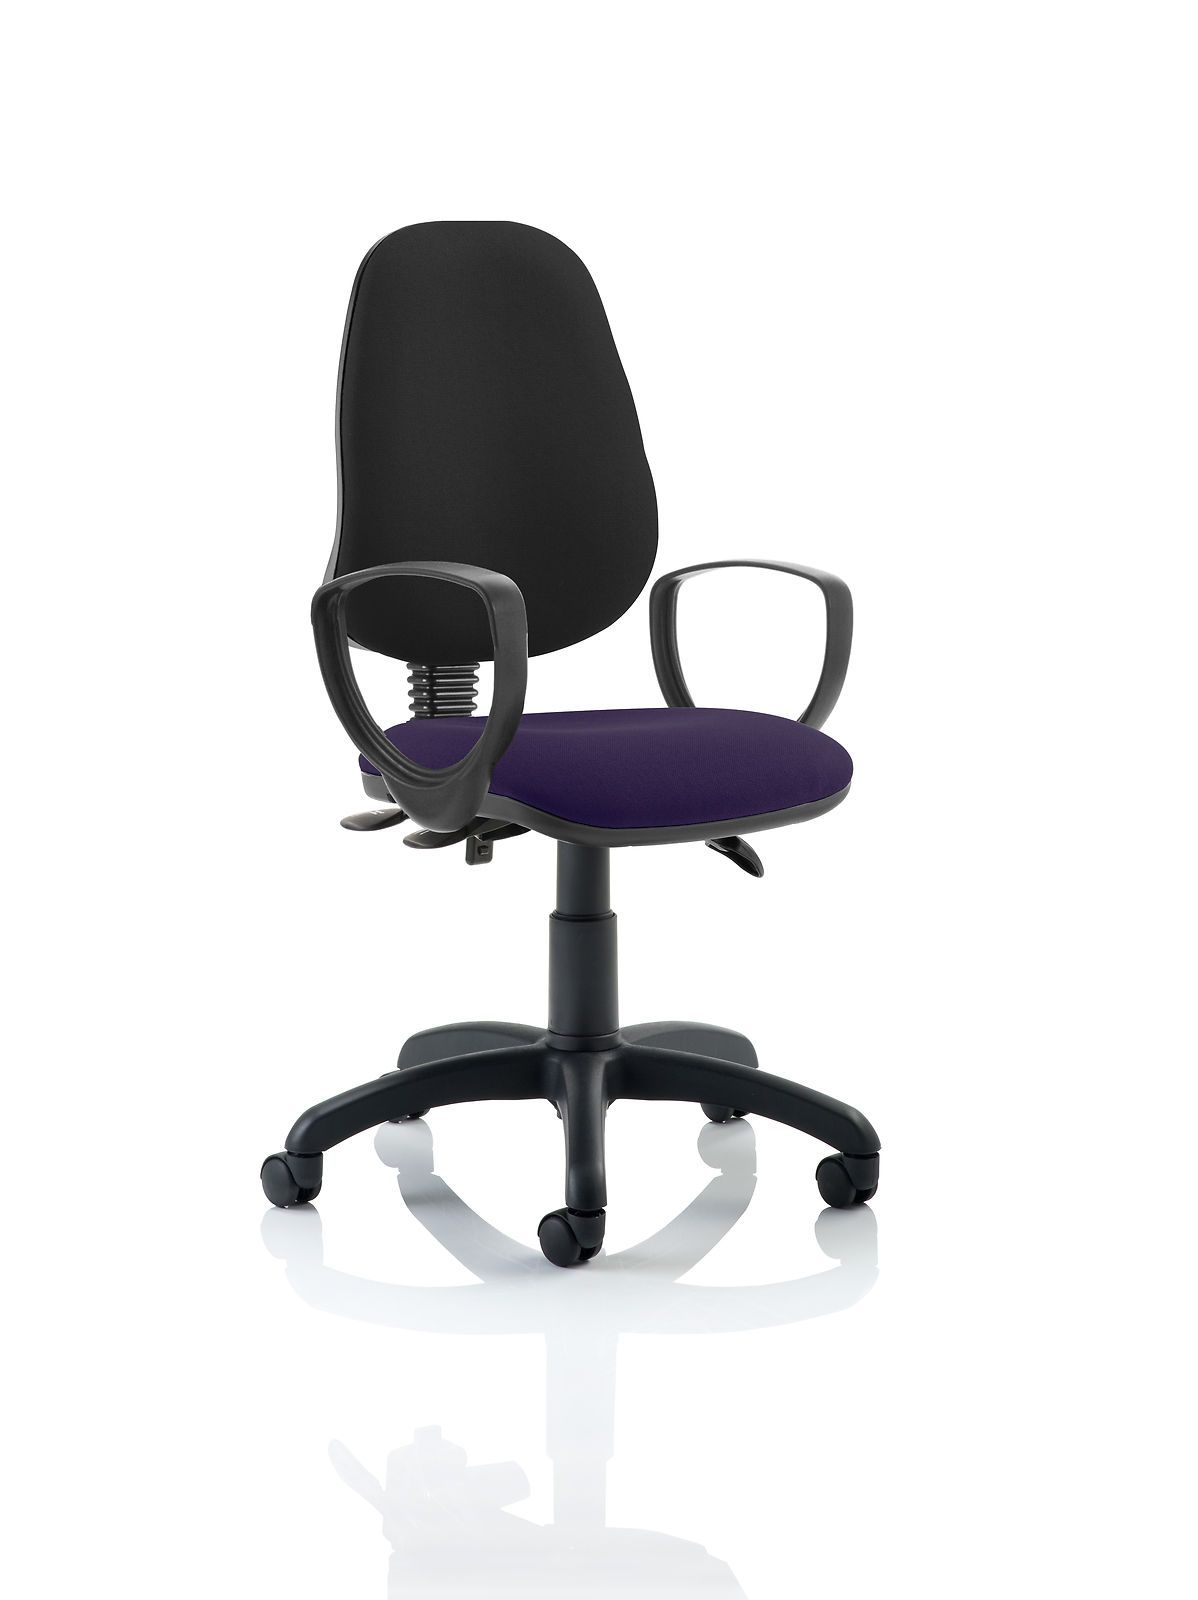 Details about office chair eclipse 3 black back bespoke